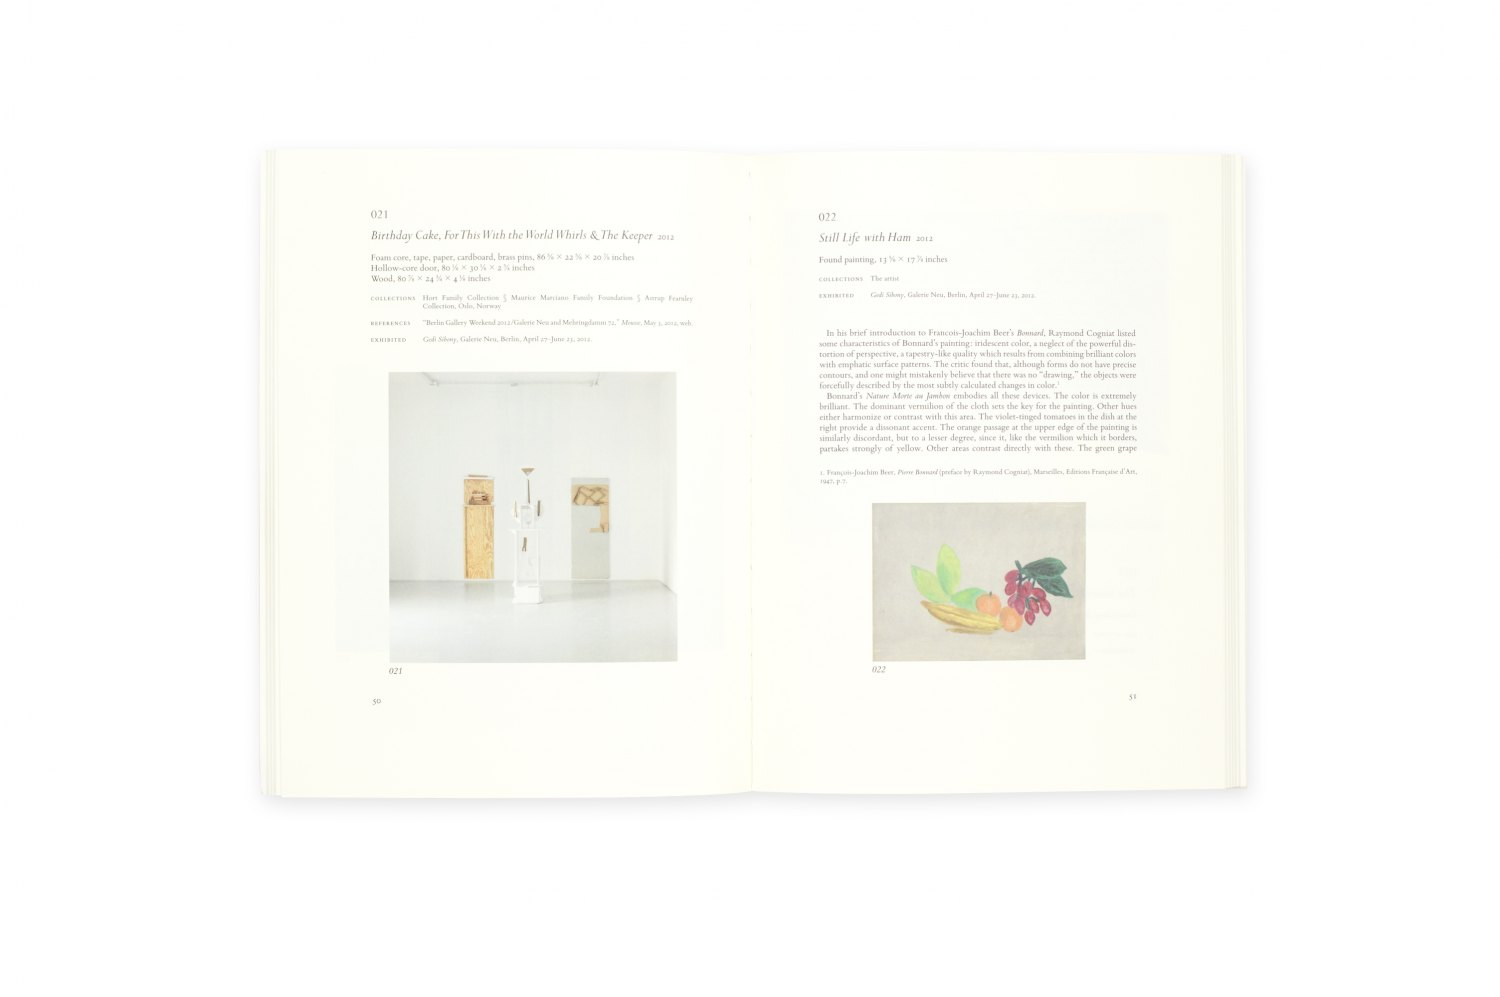 Gedi Sibony, Painting, Drawing & Sculpture: Collected Works. Volume III ed. by Mousse Publishing, Milano 2014, 144 p.  ISBN 978-8-86749-193-3